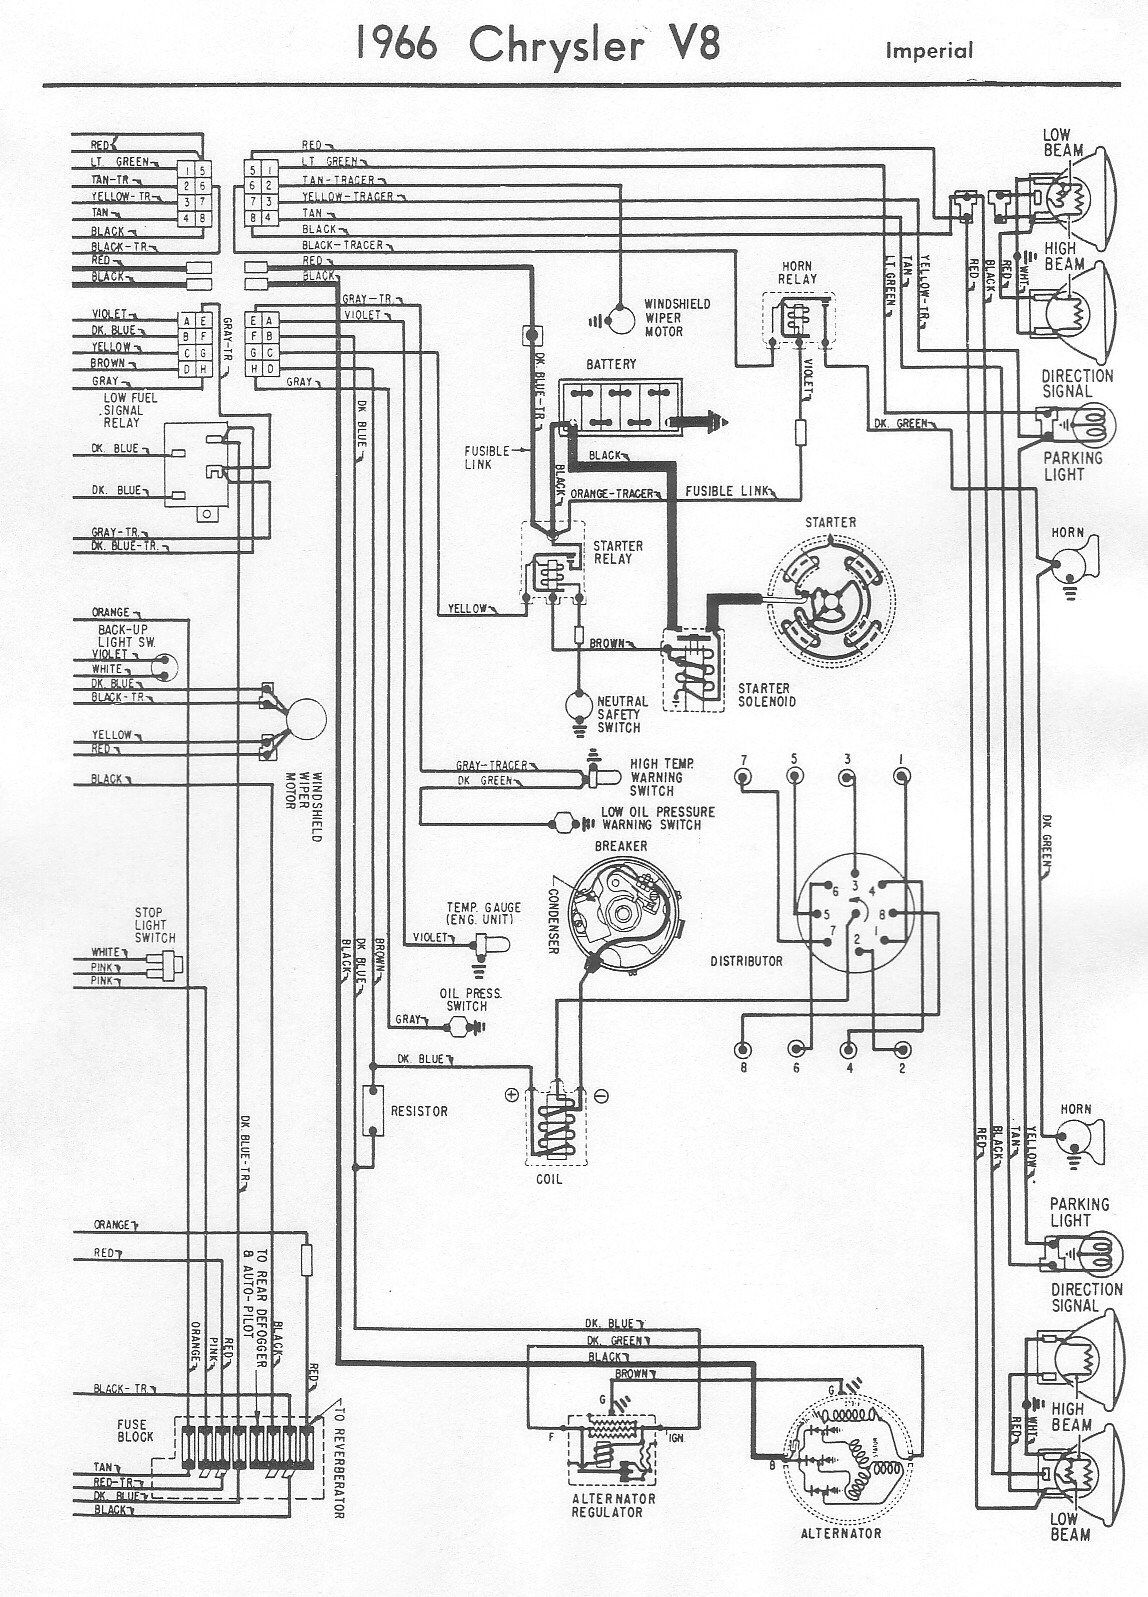 1965 chrysler newport wiring diagram 1965 chevy chevelle wiring diagram